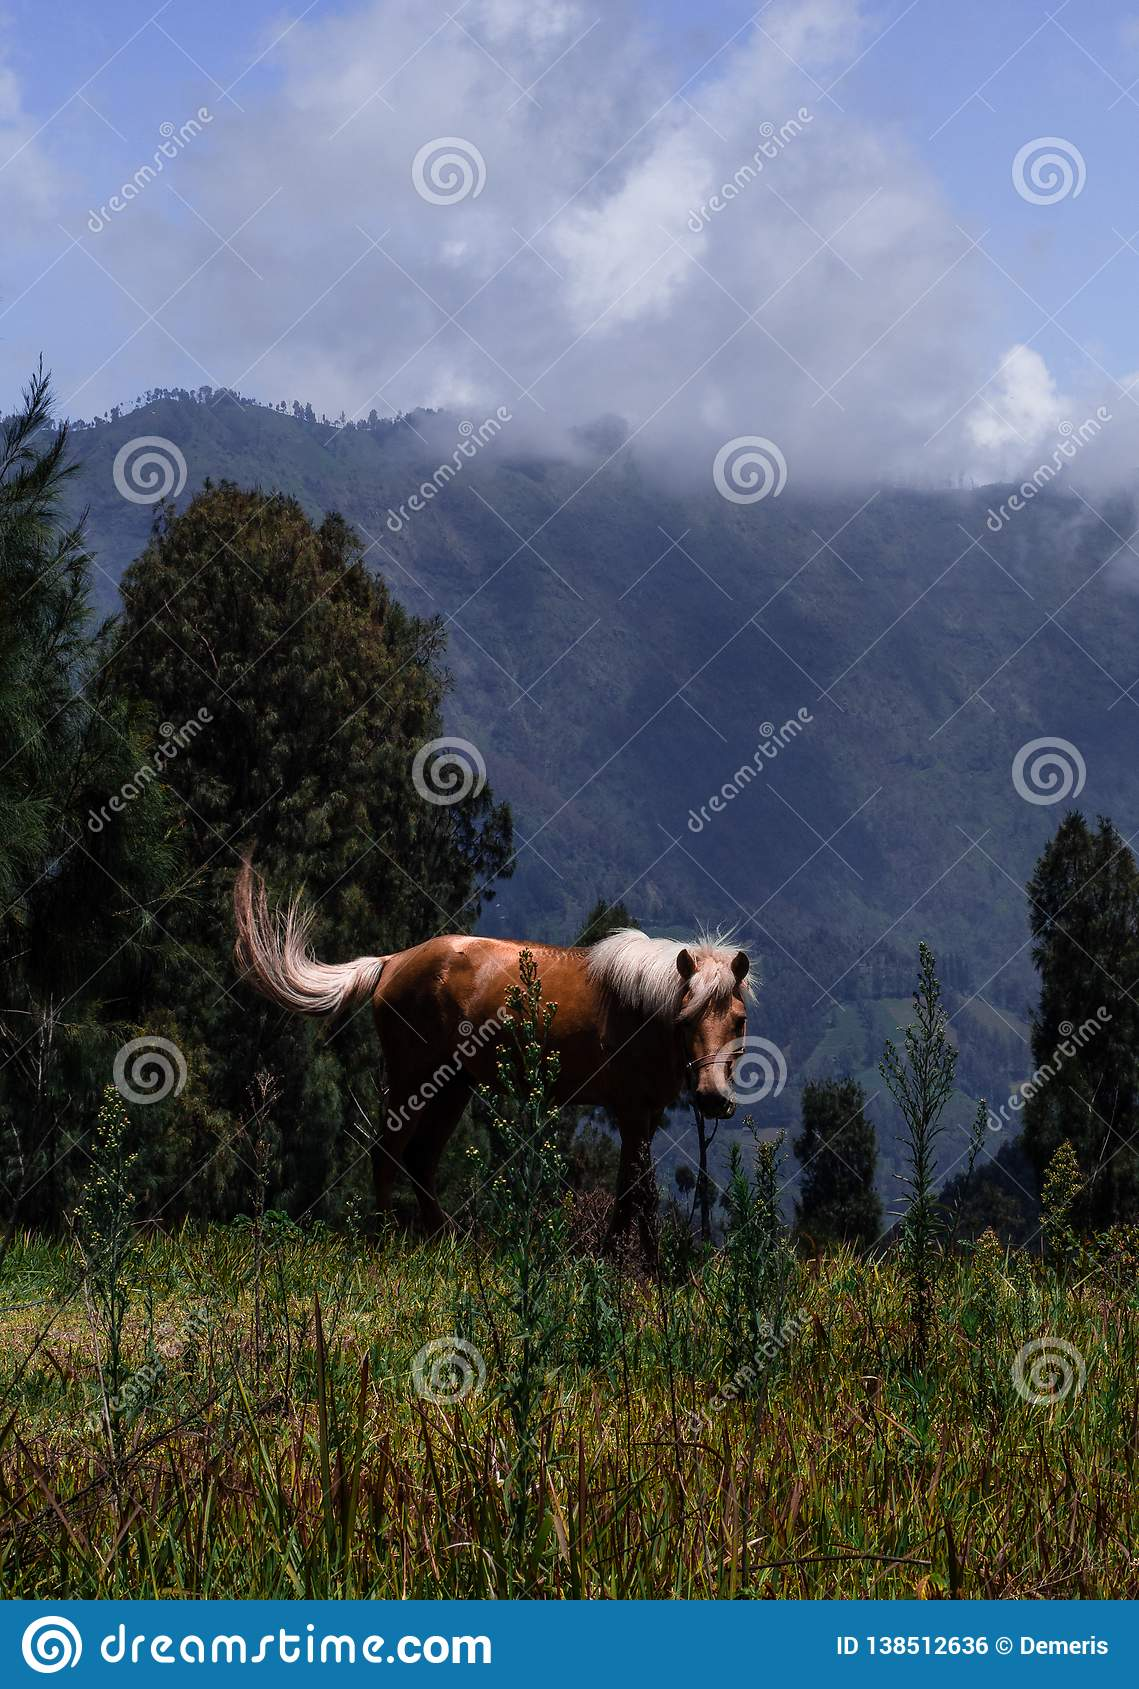 Horse Grazing in Field with Mountains Behind it